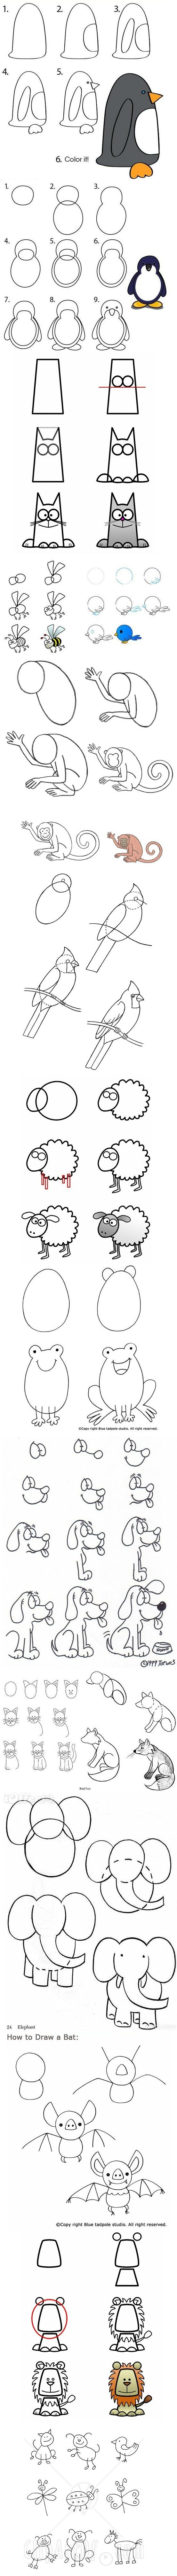 How to draw some animals